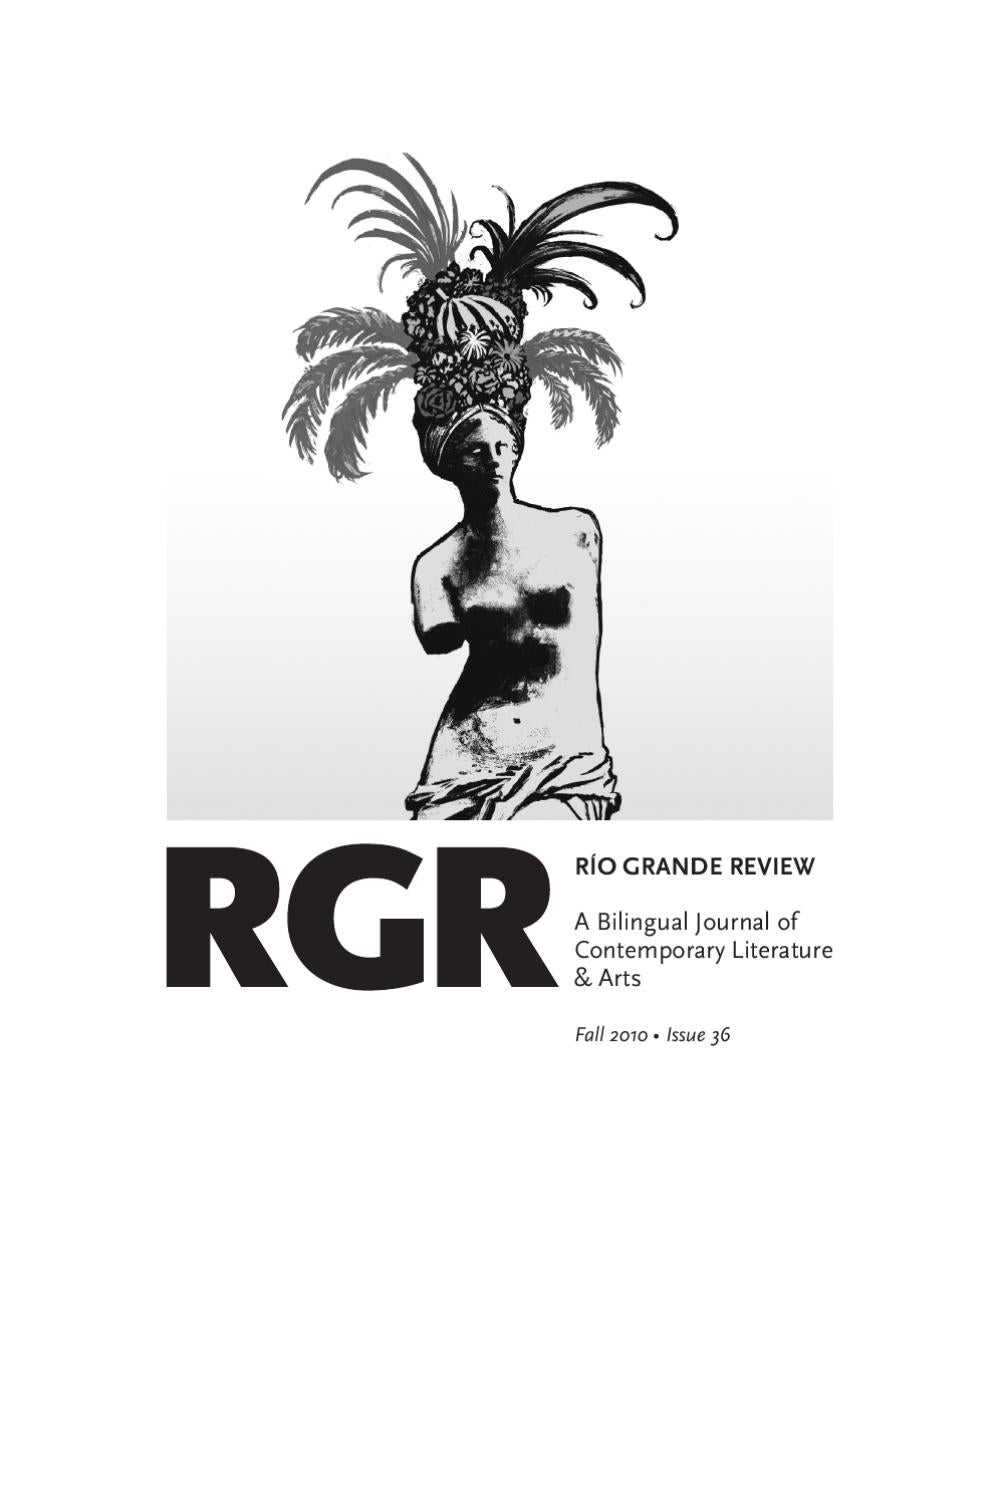 Río Grande Review Fall 2010 by Río Grande Review - issuu 4a8c2be5c850